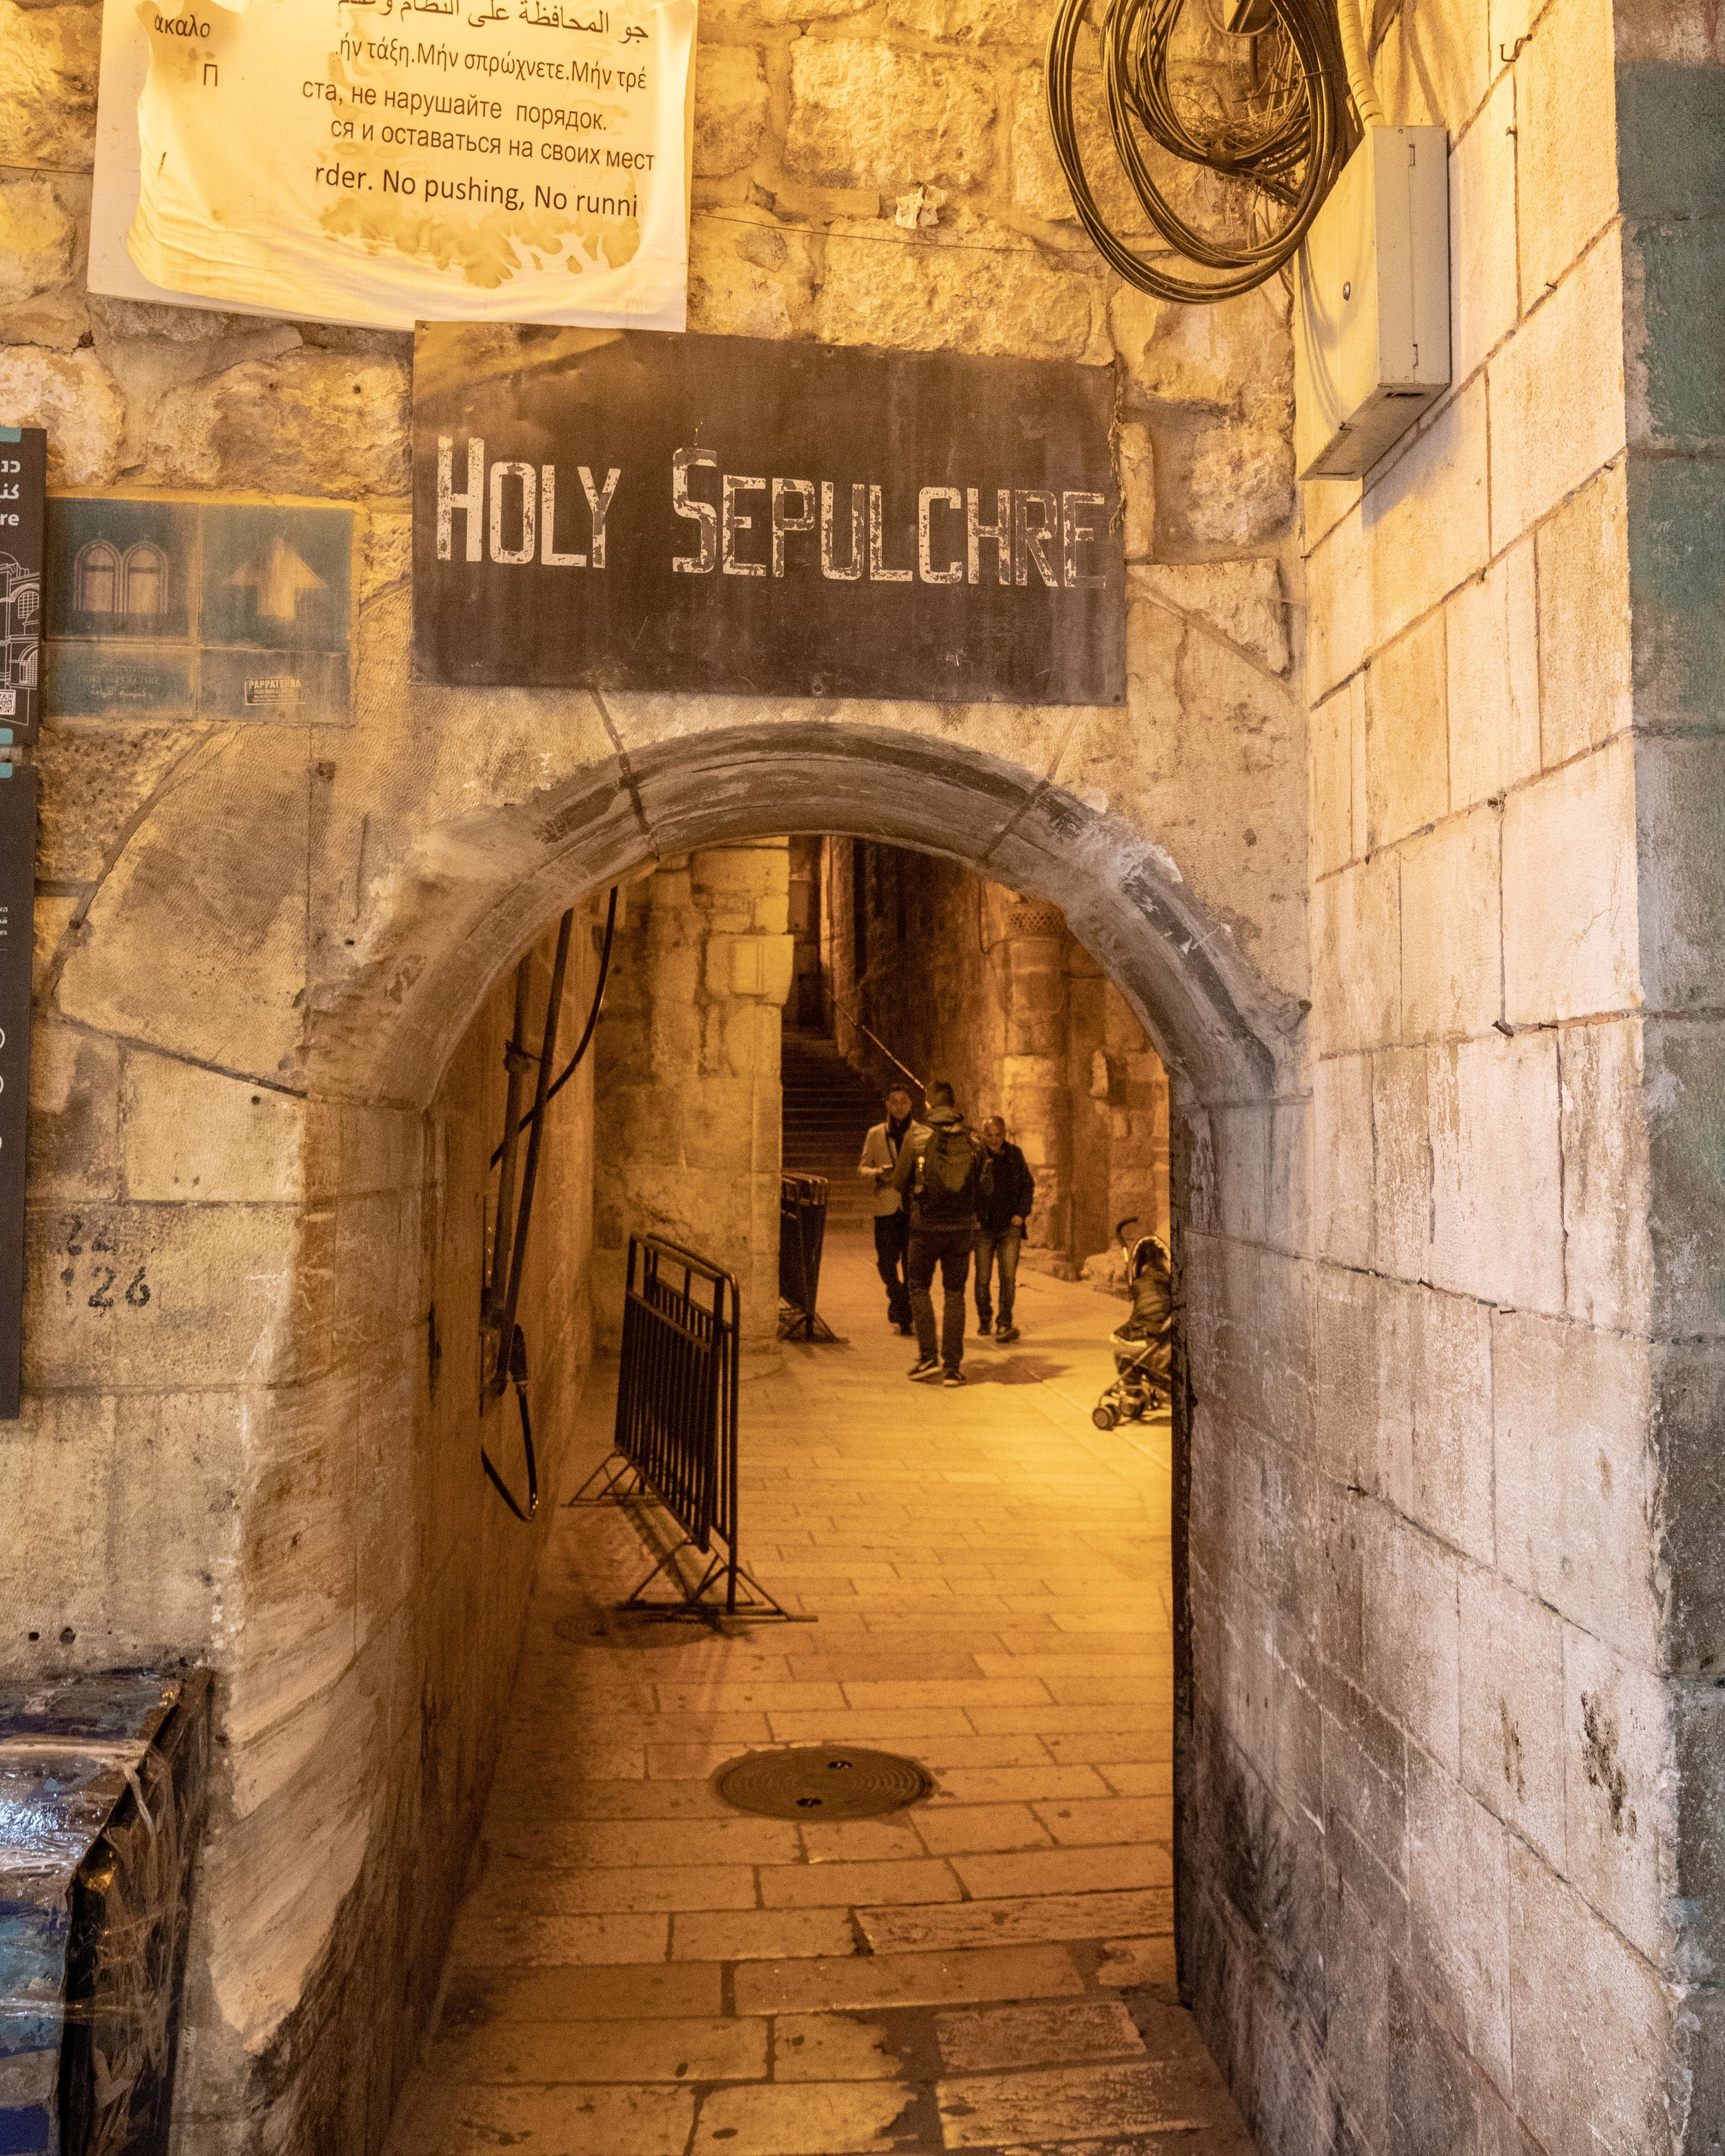 Entry to the Holy Sepulchre - things to do in Jerusalem